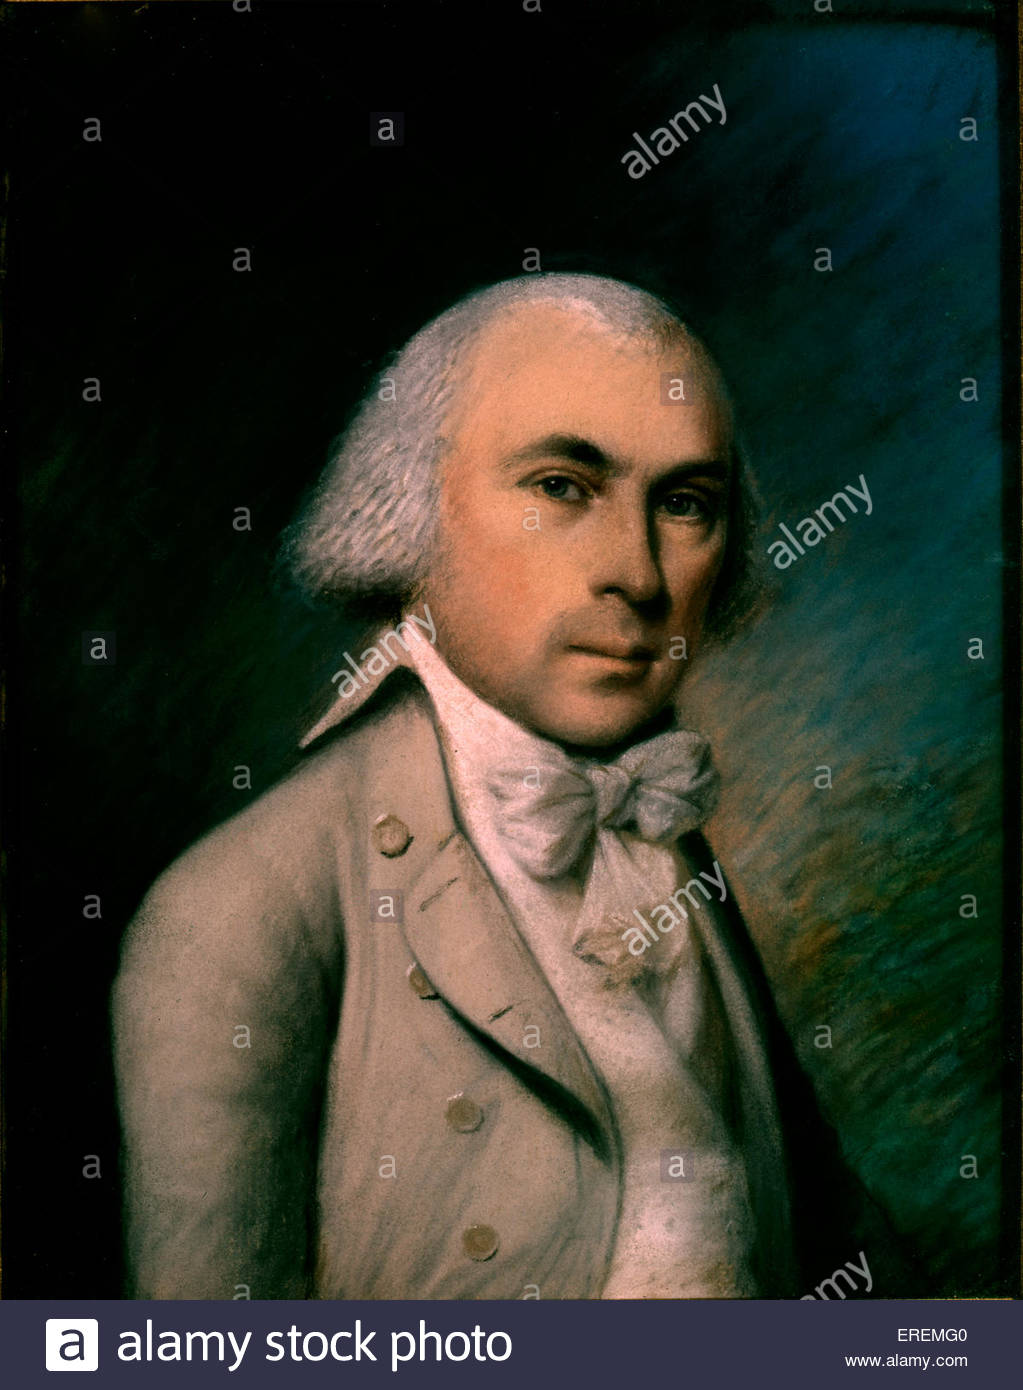 James Madison by James Sharples. 4th President of the United States of America from 1809 to 1817, Founding Father - Stock Image